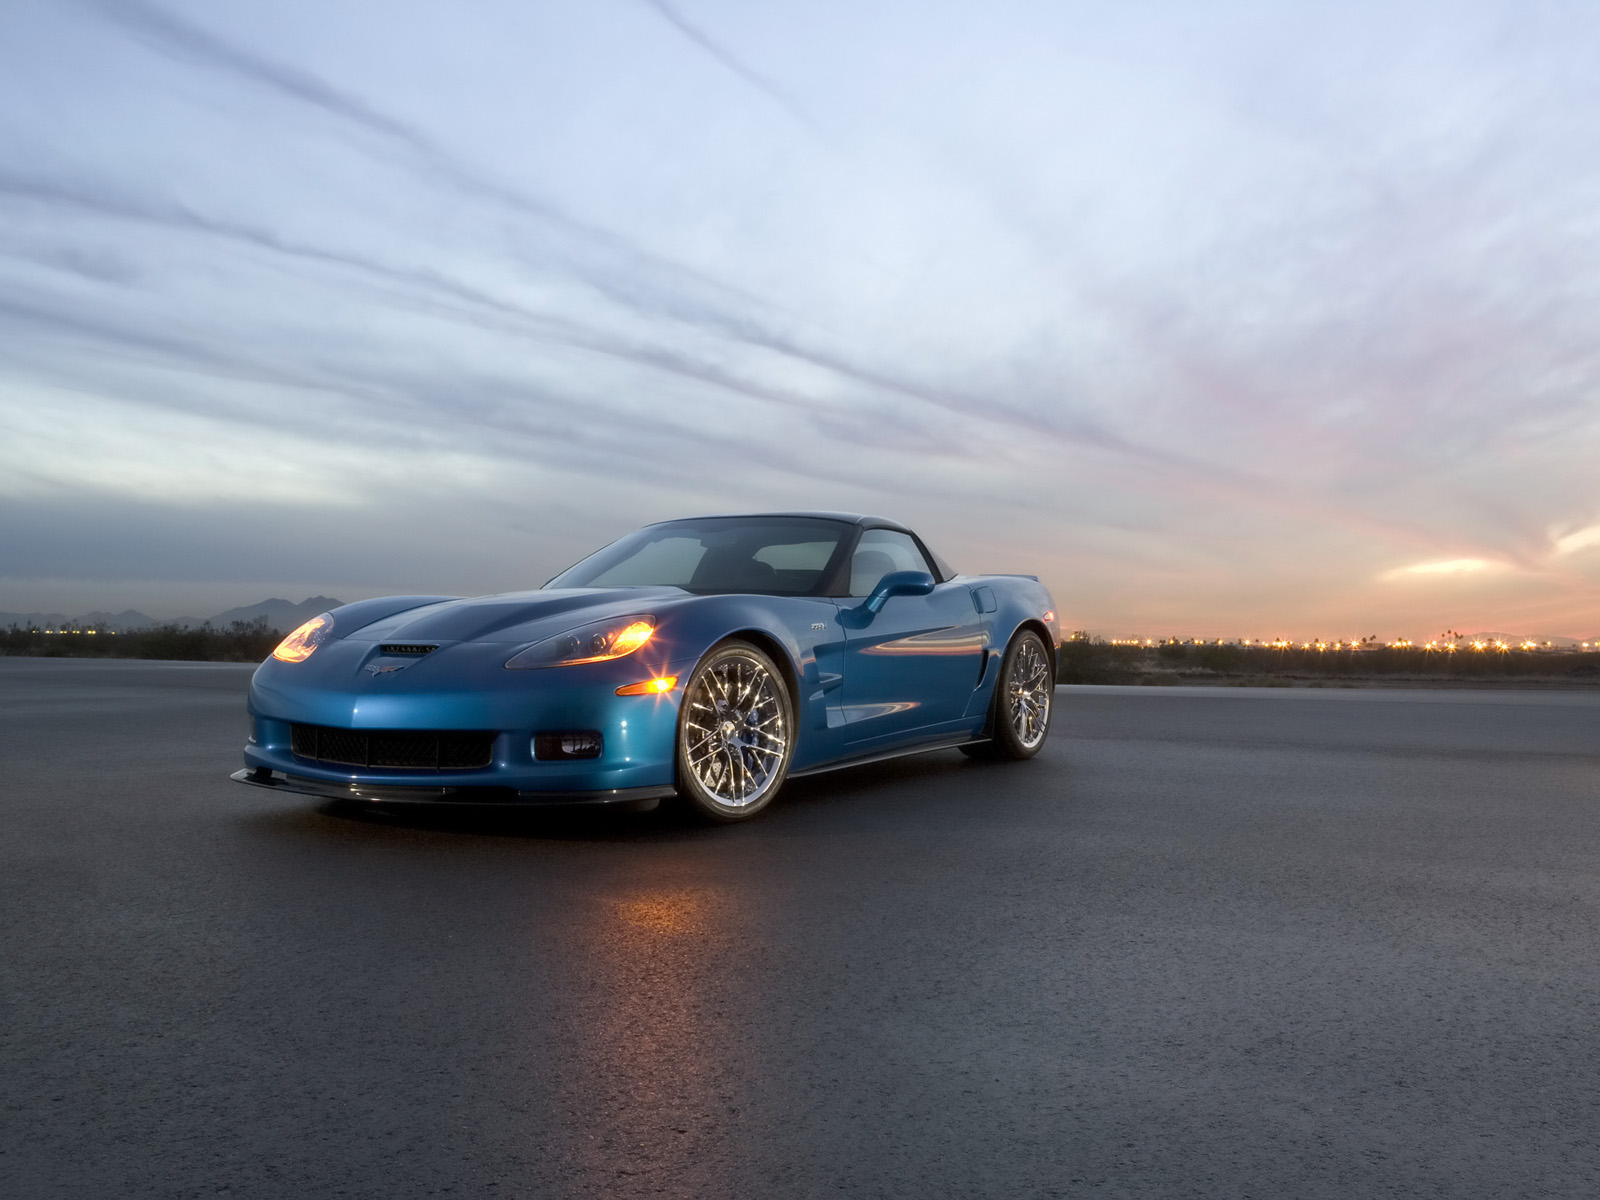 2009 Chevrolet Corvette ZR1 1ZR, Picture of 2009 Chevrolet Corvette ZR1, manufacturer, exterior